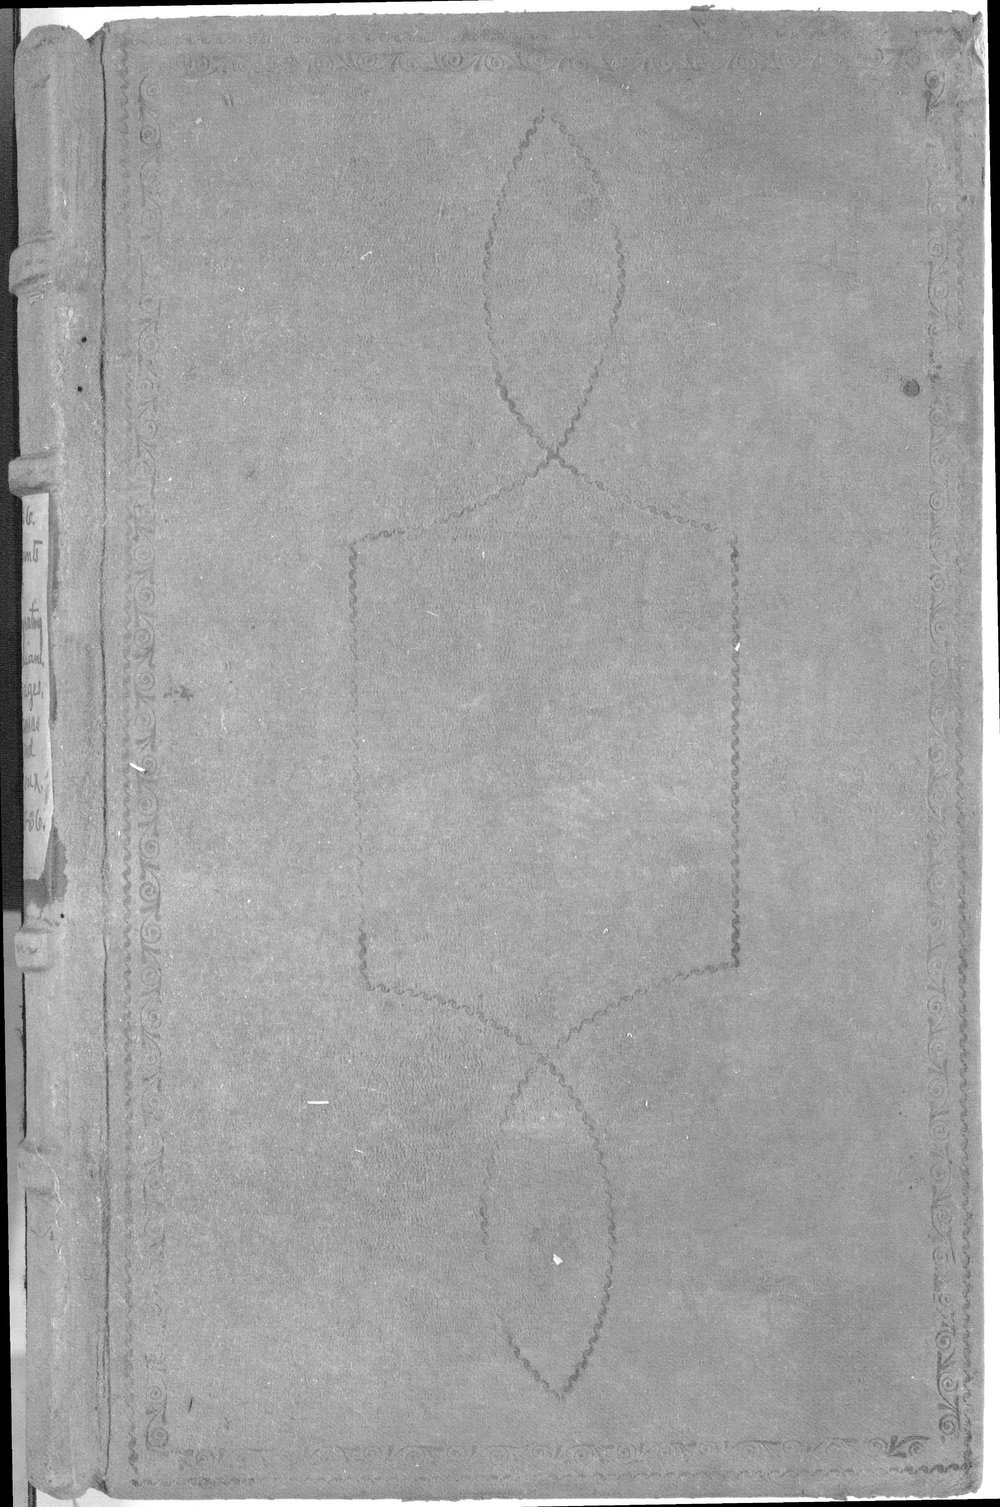 United States Office of Indian Affairs, Central Superintendency, St. Louis, Missouri. Volume 26, Accounts - Front Cover